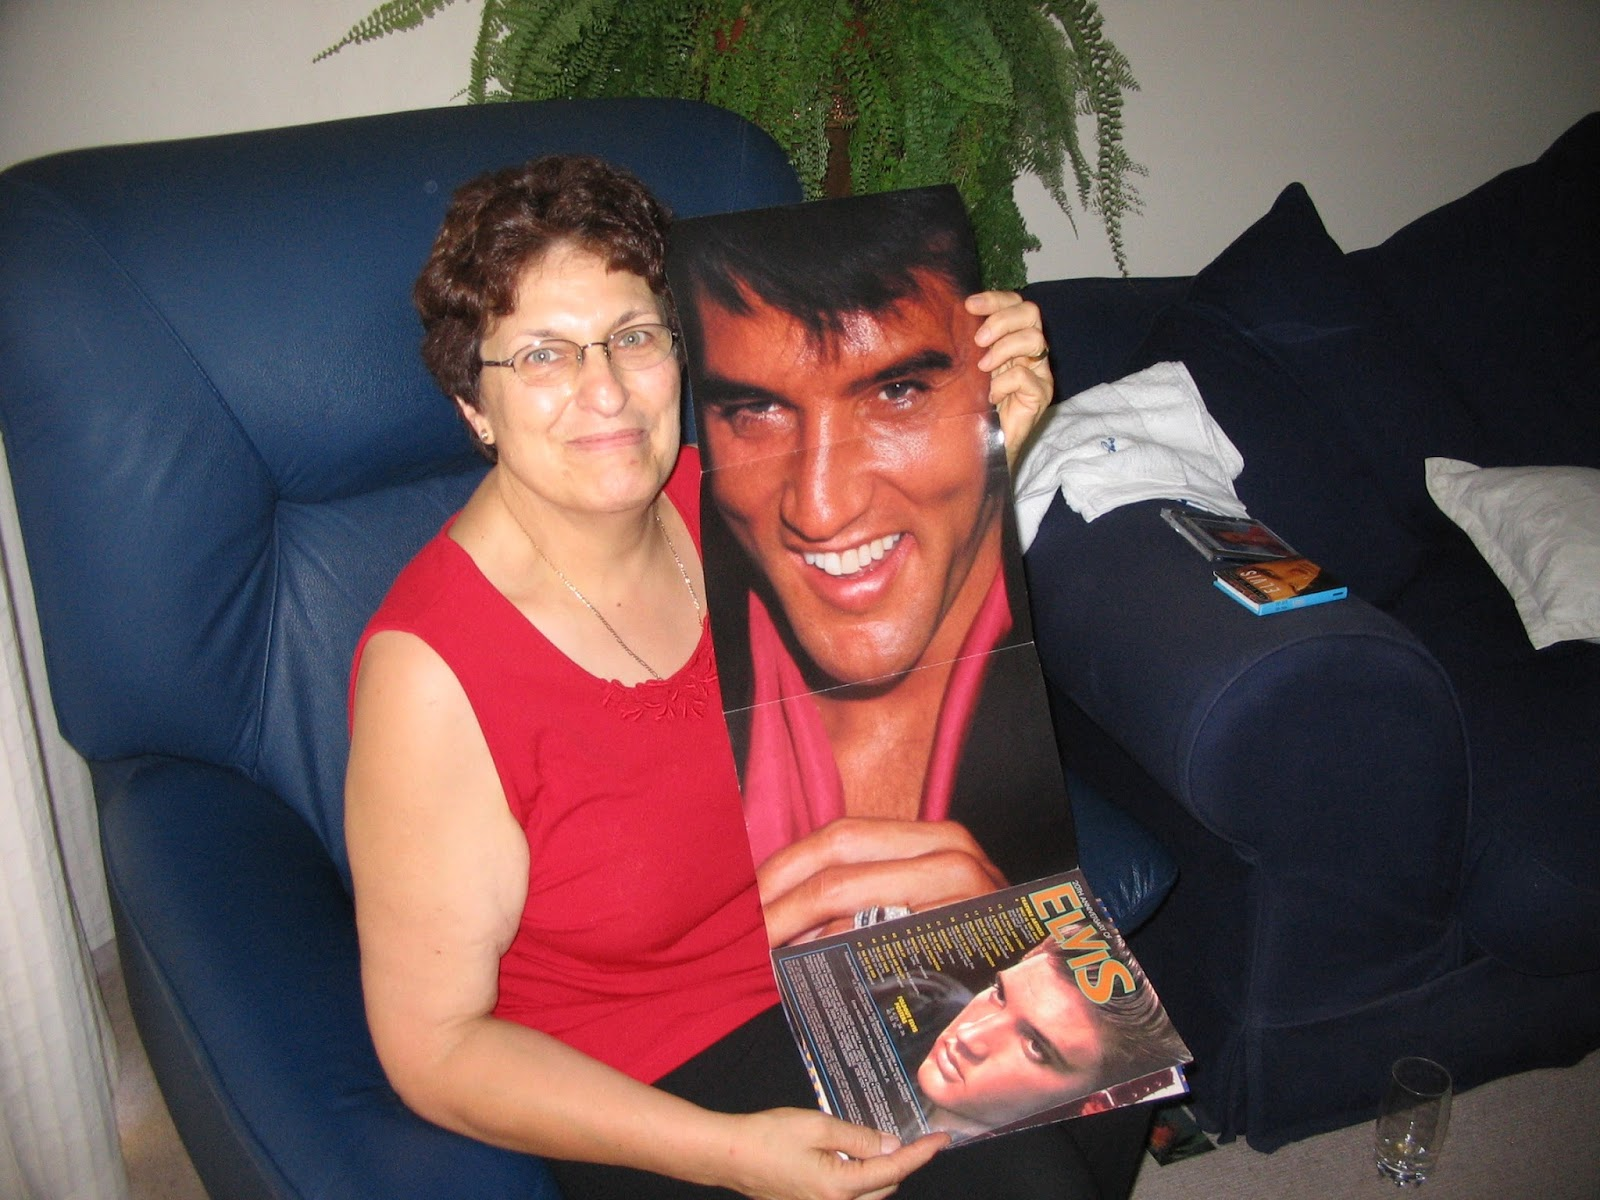 Elvis fan with Elvis picture